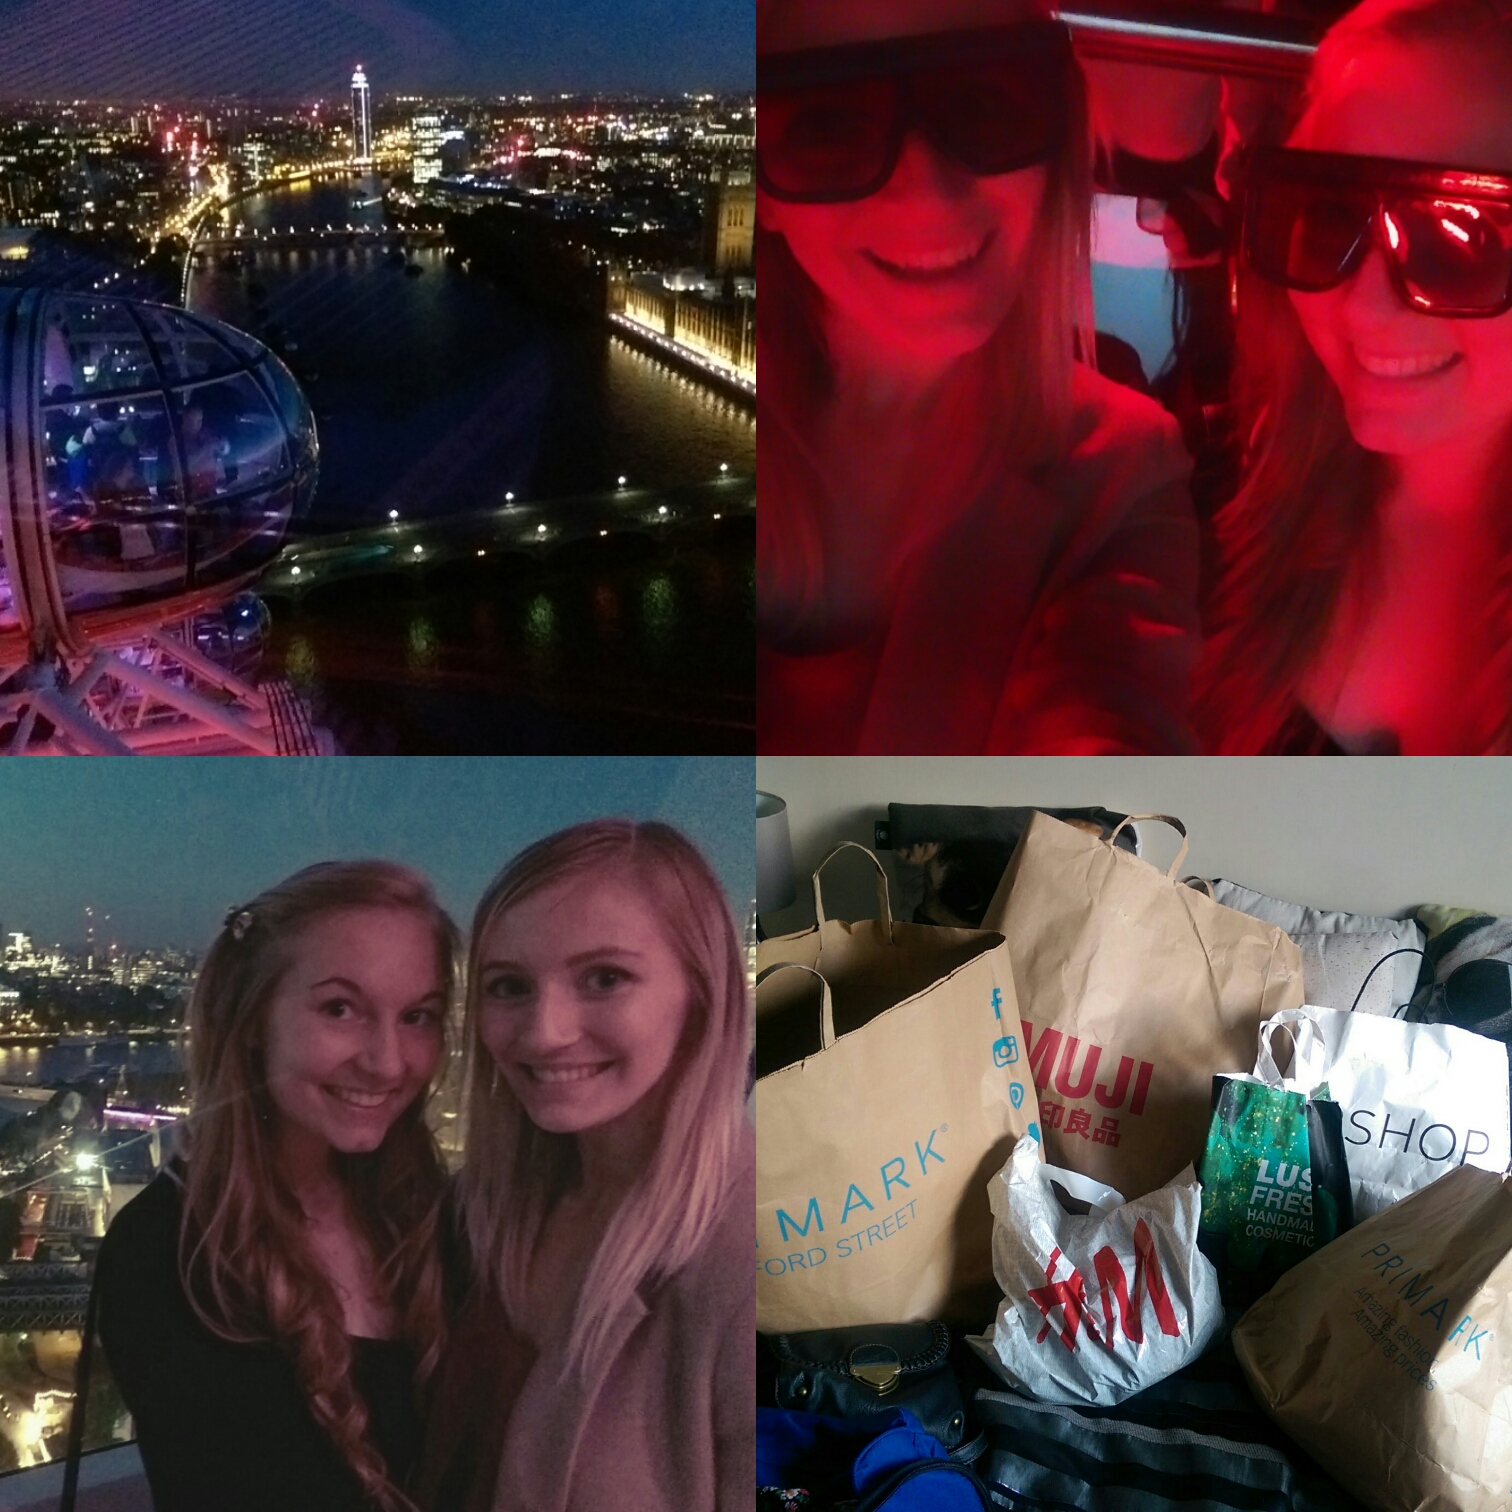 london adventure - london eye, oxfort street and cinema